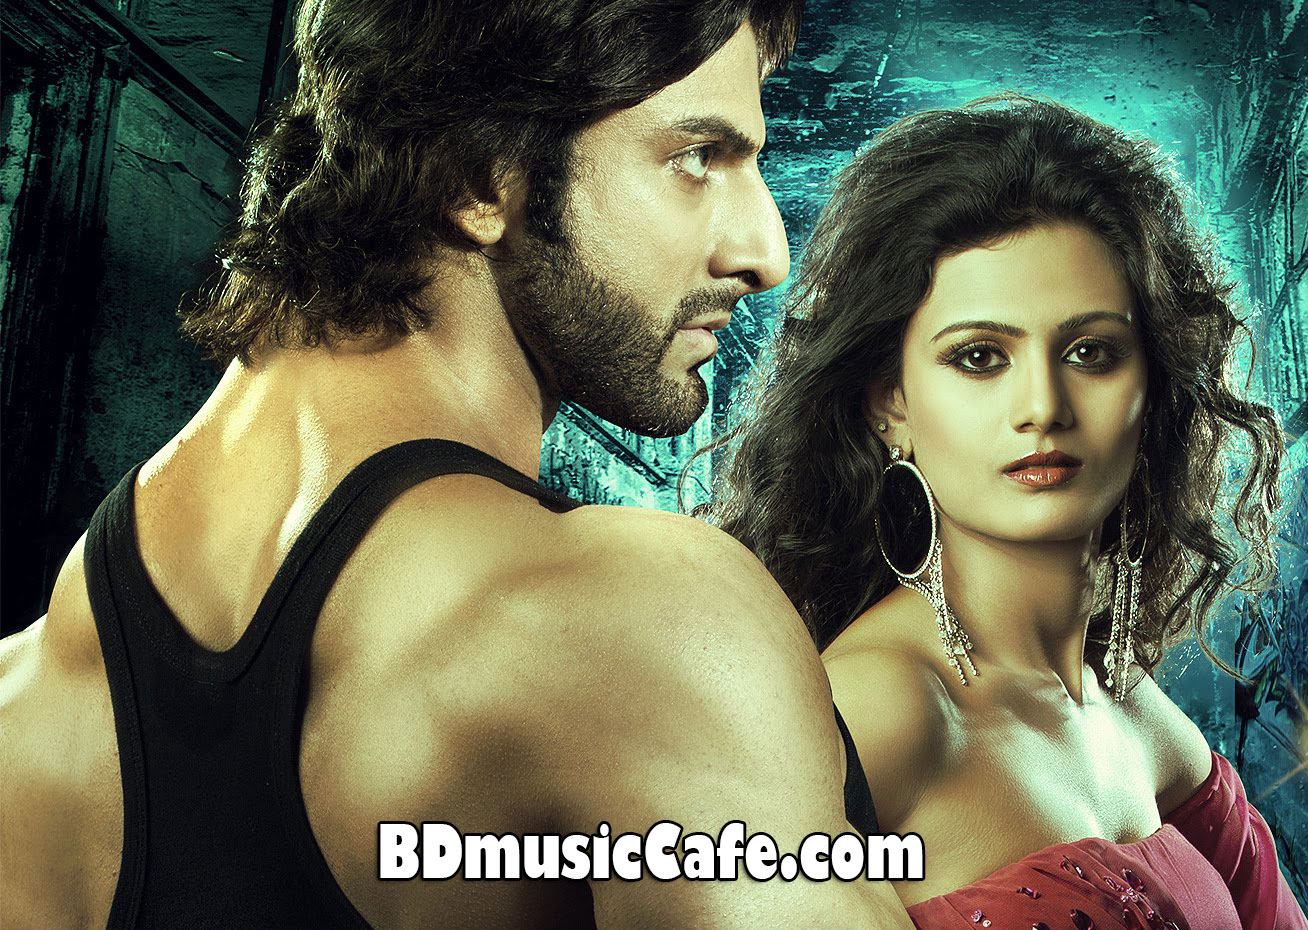 Club dancer 2016 bollywood movie mp3 songs download bd All songs hd video 2016